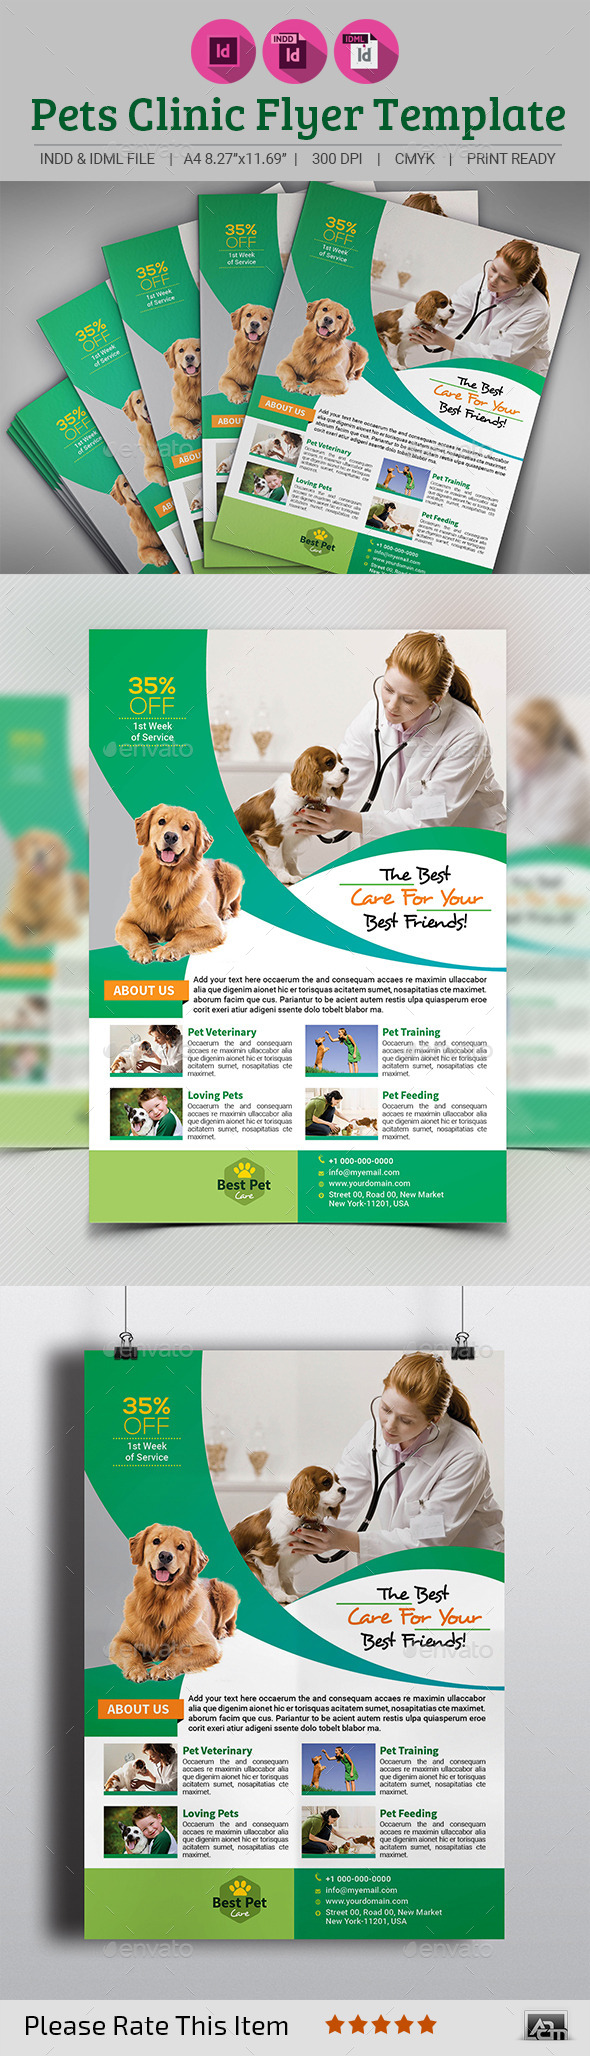 Pets Clinic Flyer Template - Commerce Flyers